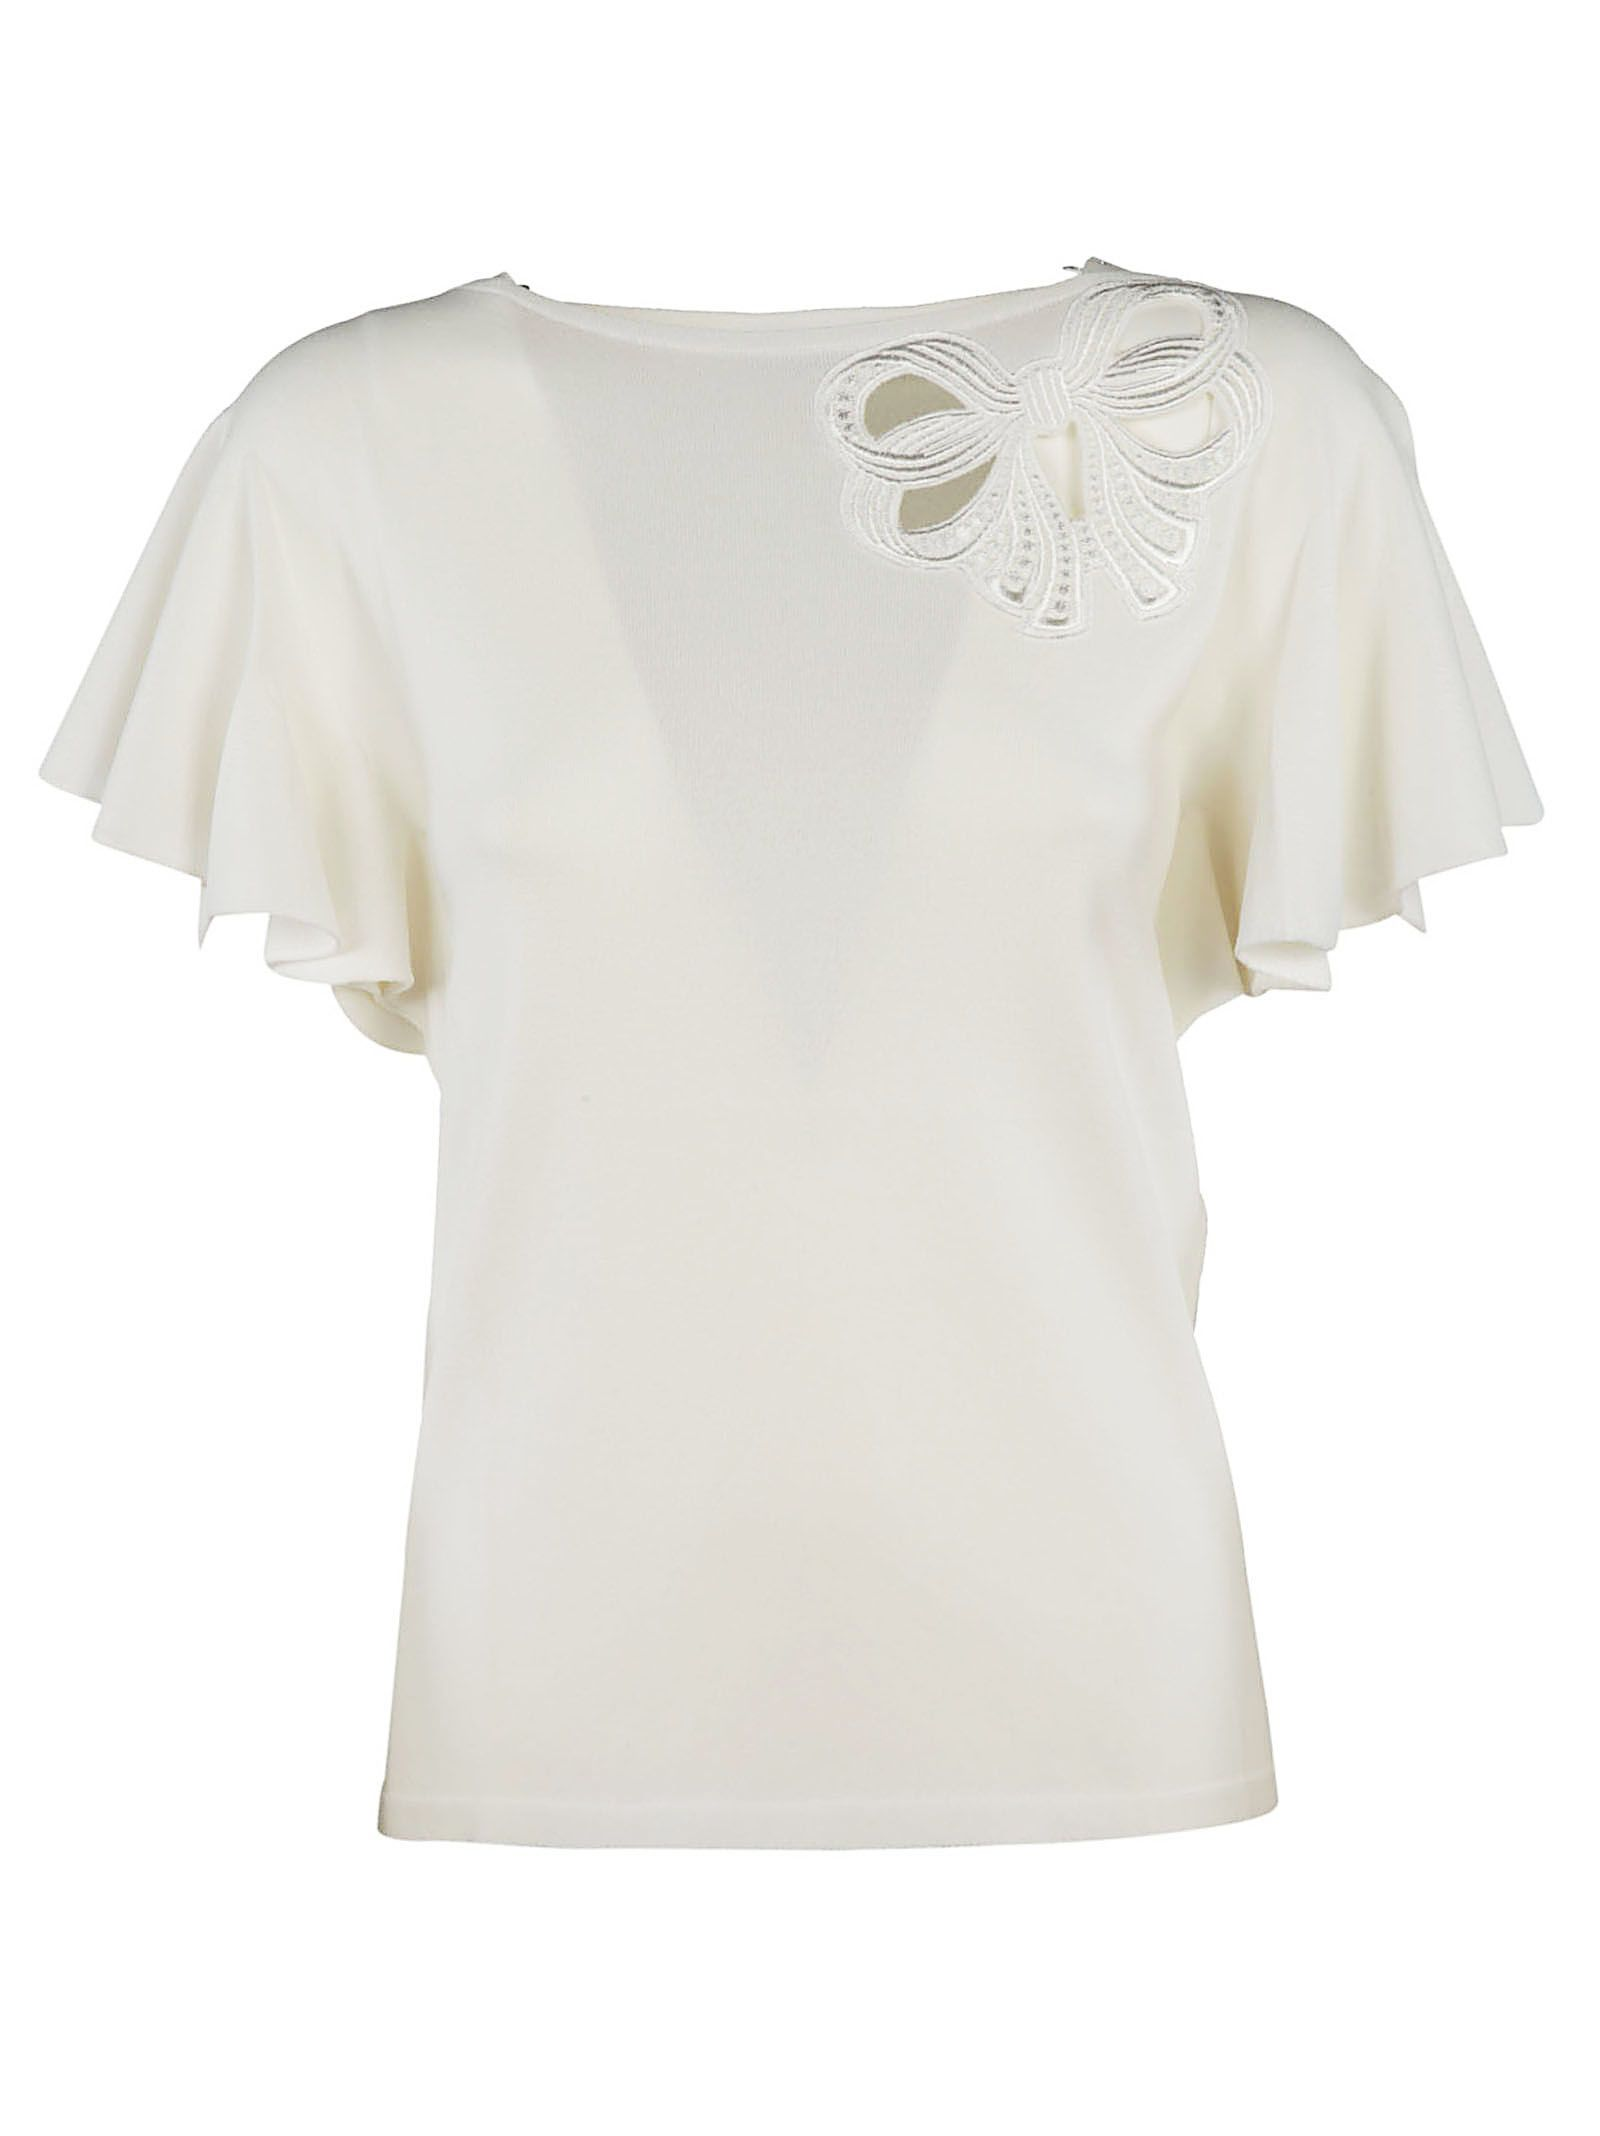 Blumarine Ribbon Embroidered Top